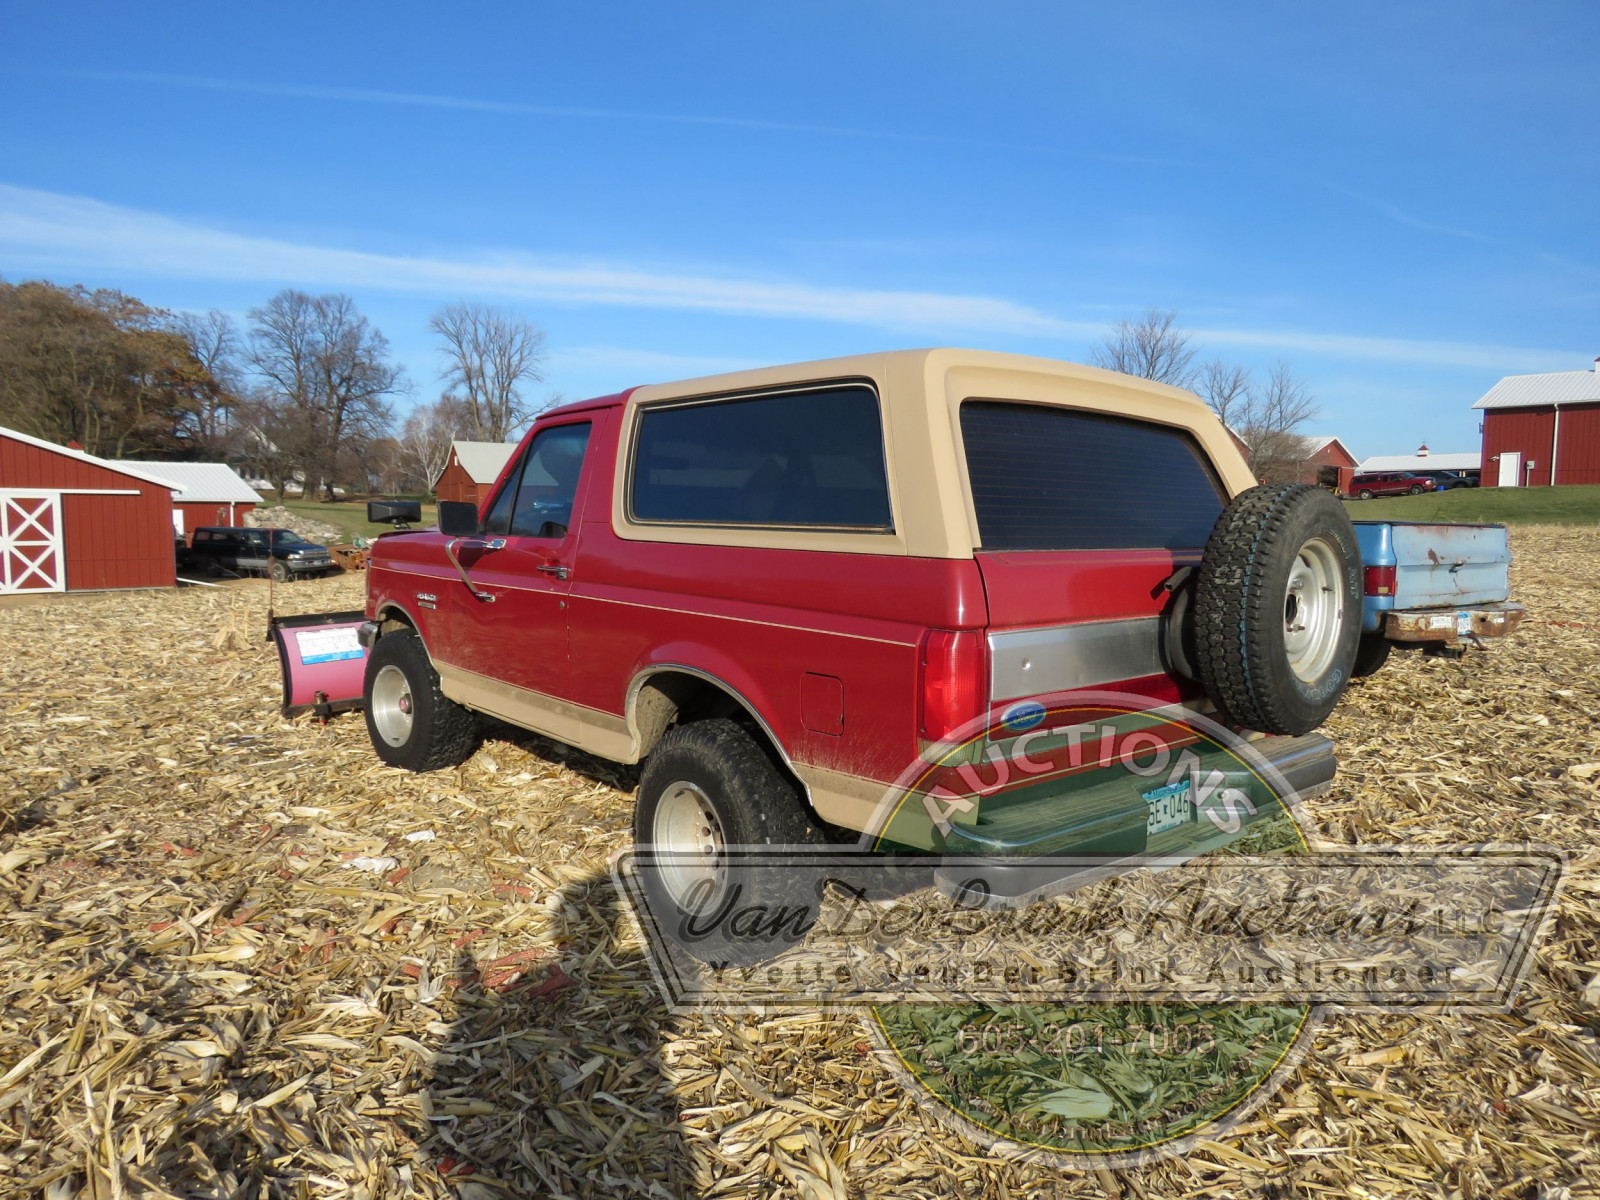 1989 Ford Bronco with Snowplow - Image 8